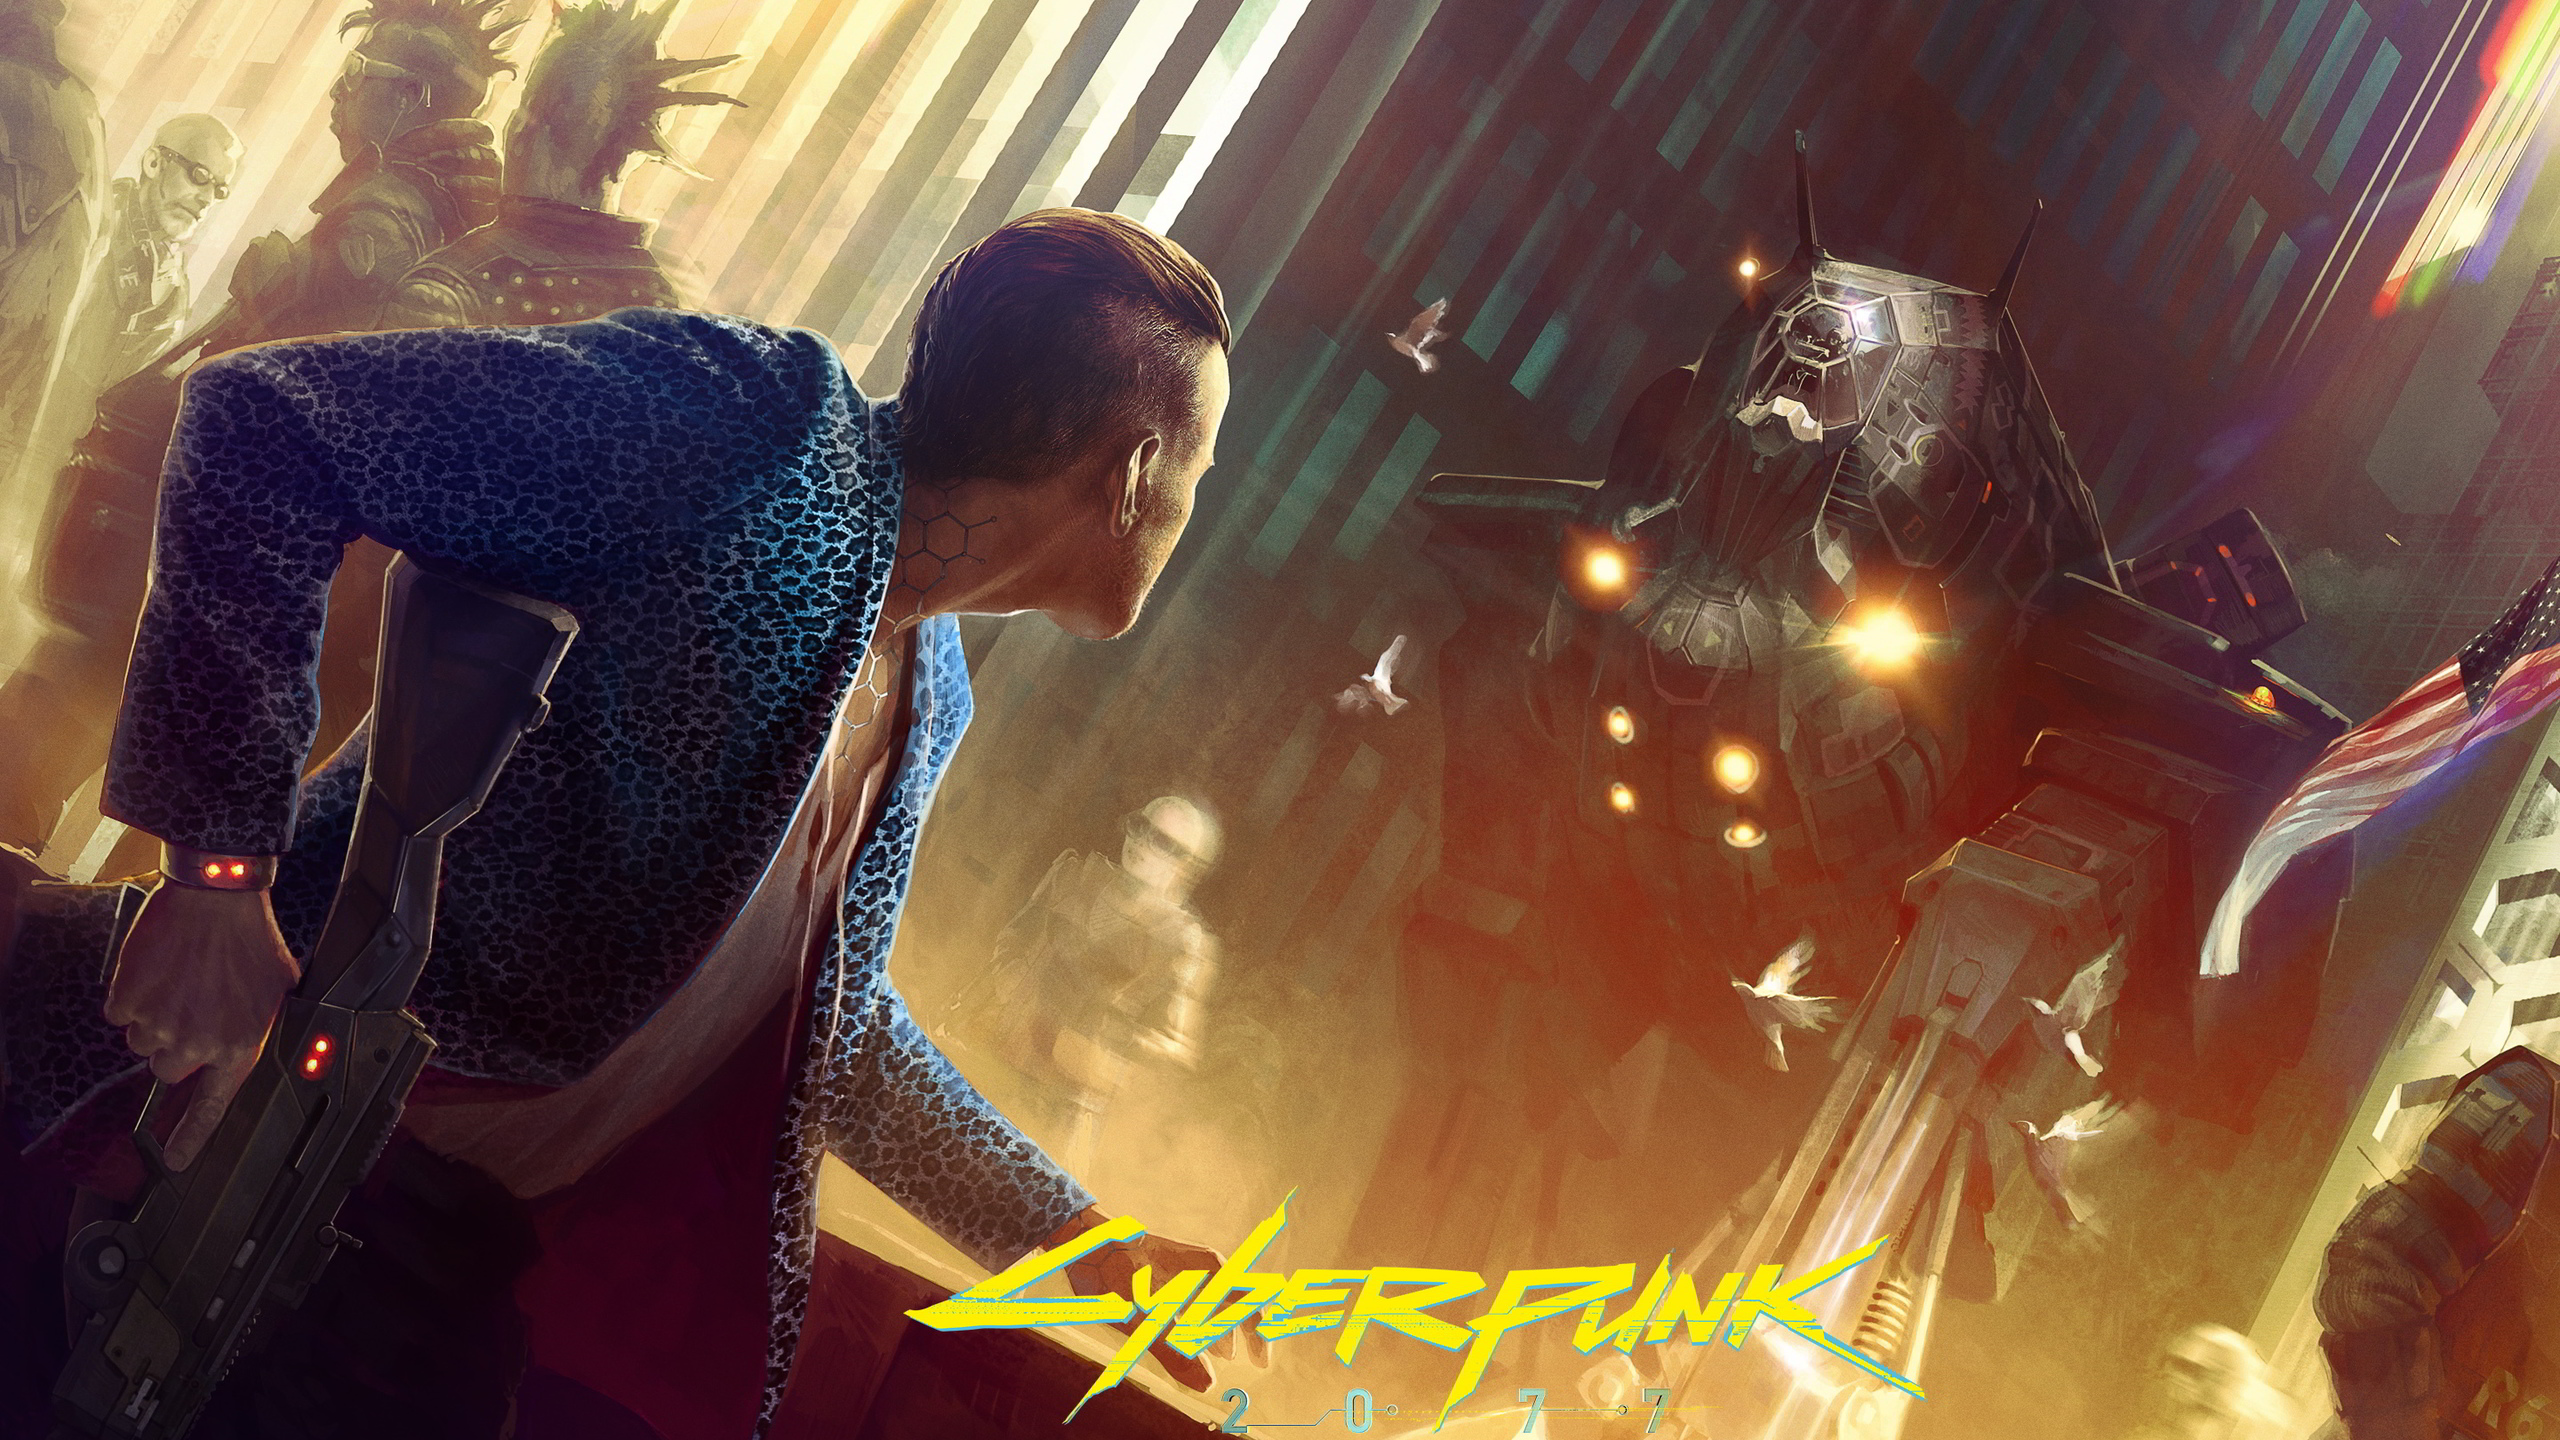 cyberpunk 2077 game hd